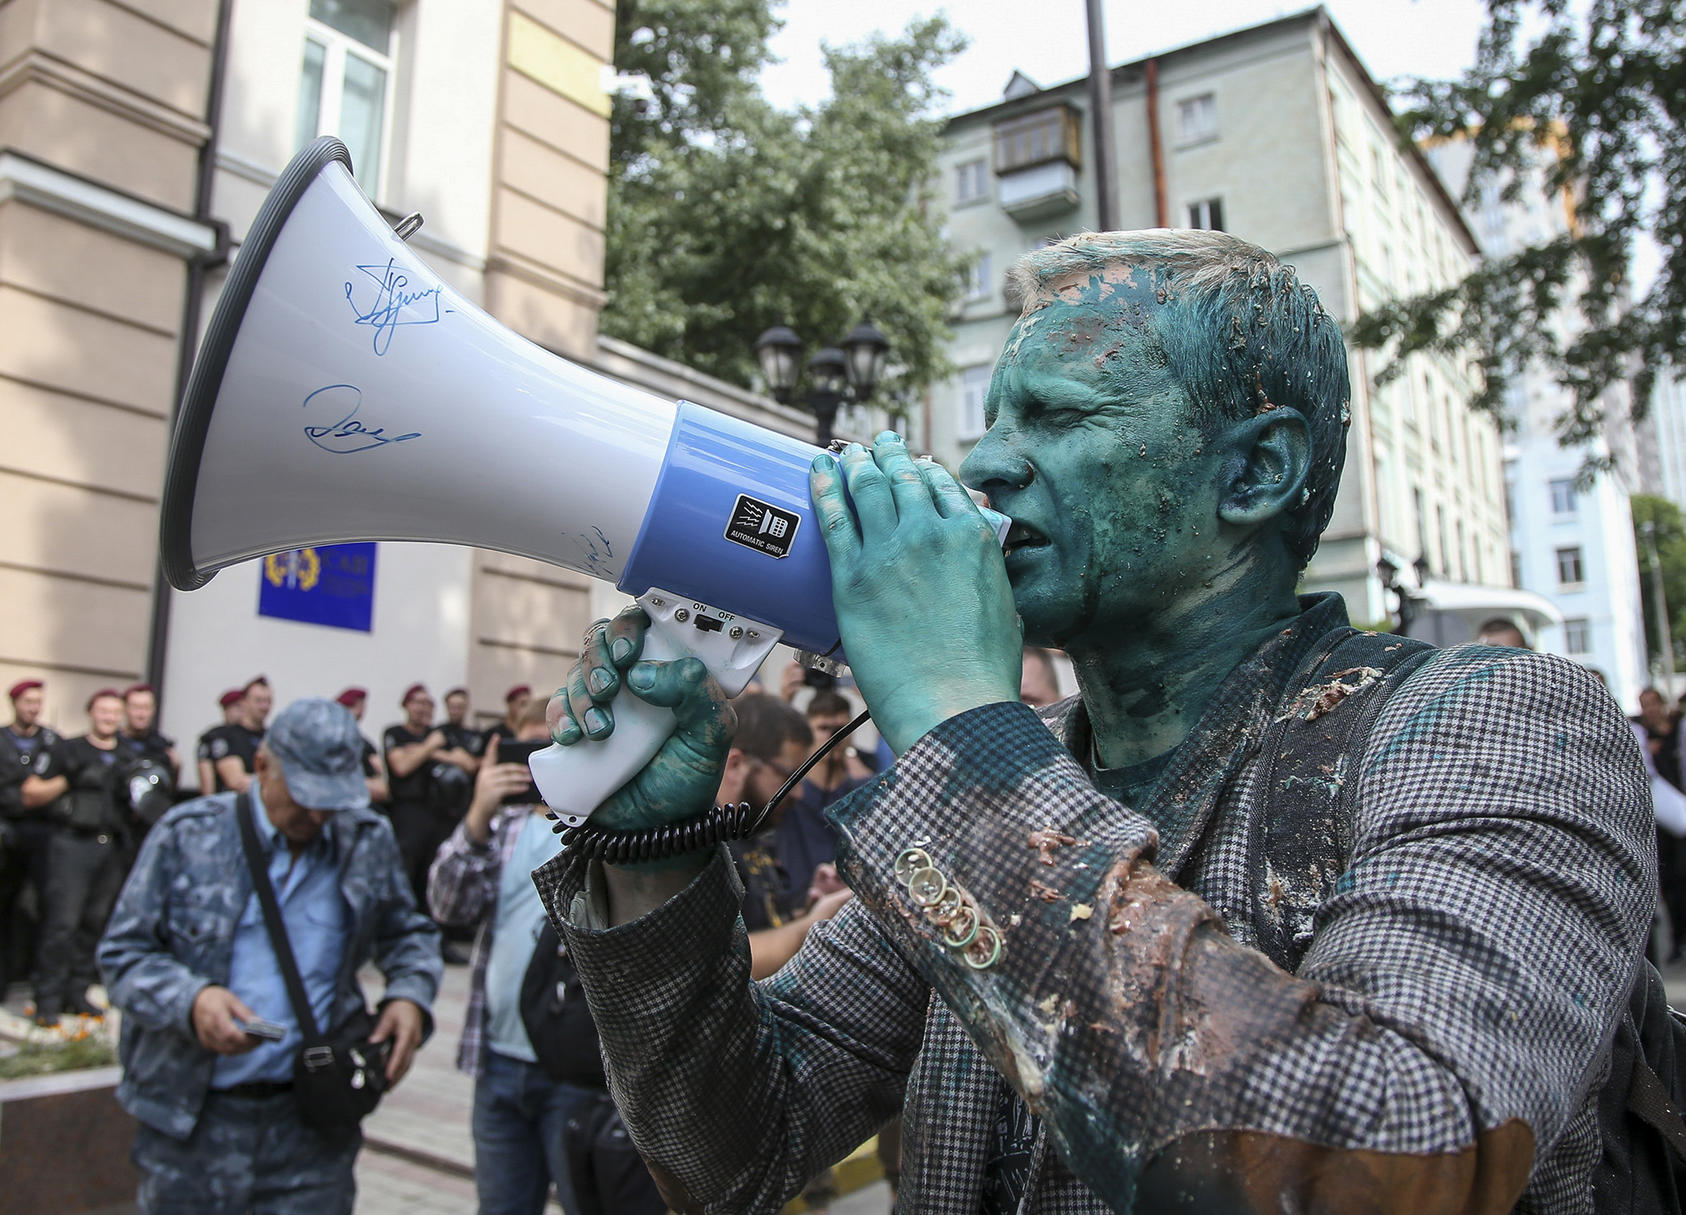 Vitaly Shabunin of the Anti-Corruption Action Center rallies protesters outside the Specialized Anti-Corruption Prosecutor's Office in Kyiv. (Photo by Viacheslav Ratynskyi/Reuters)